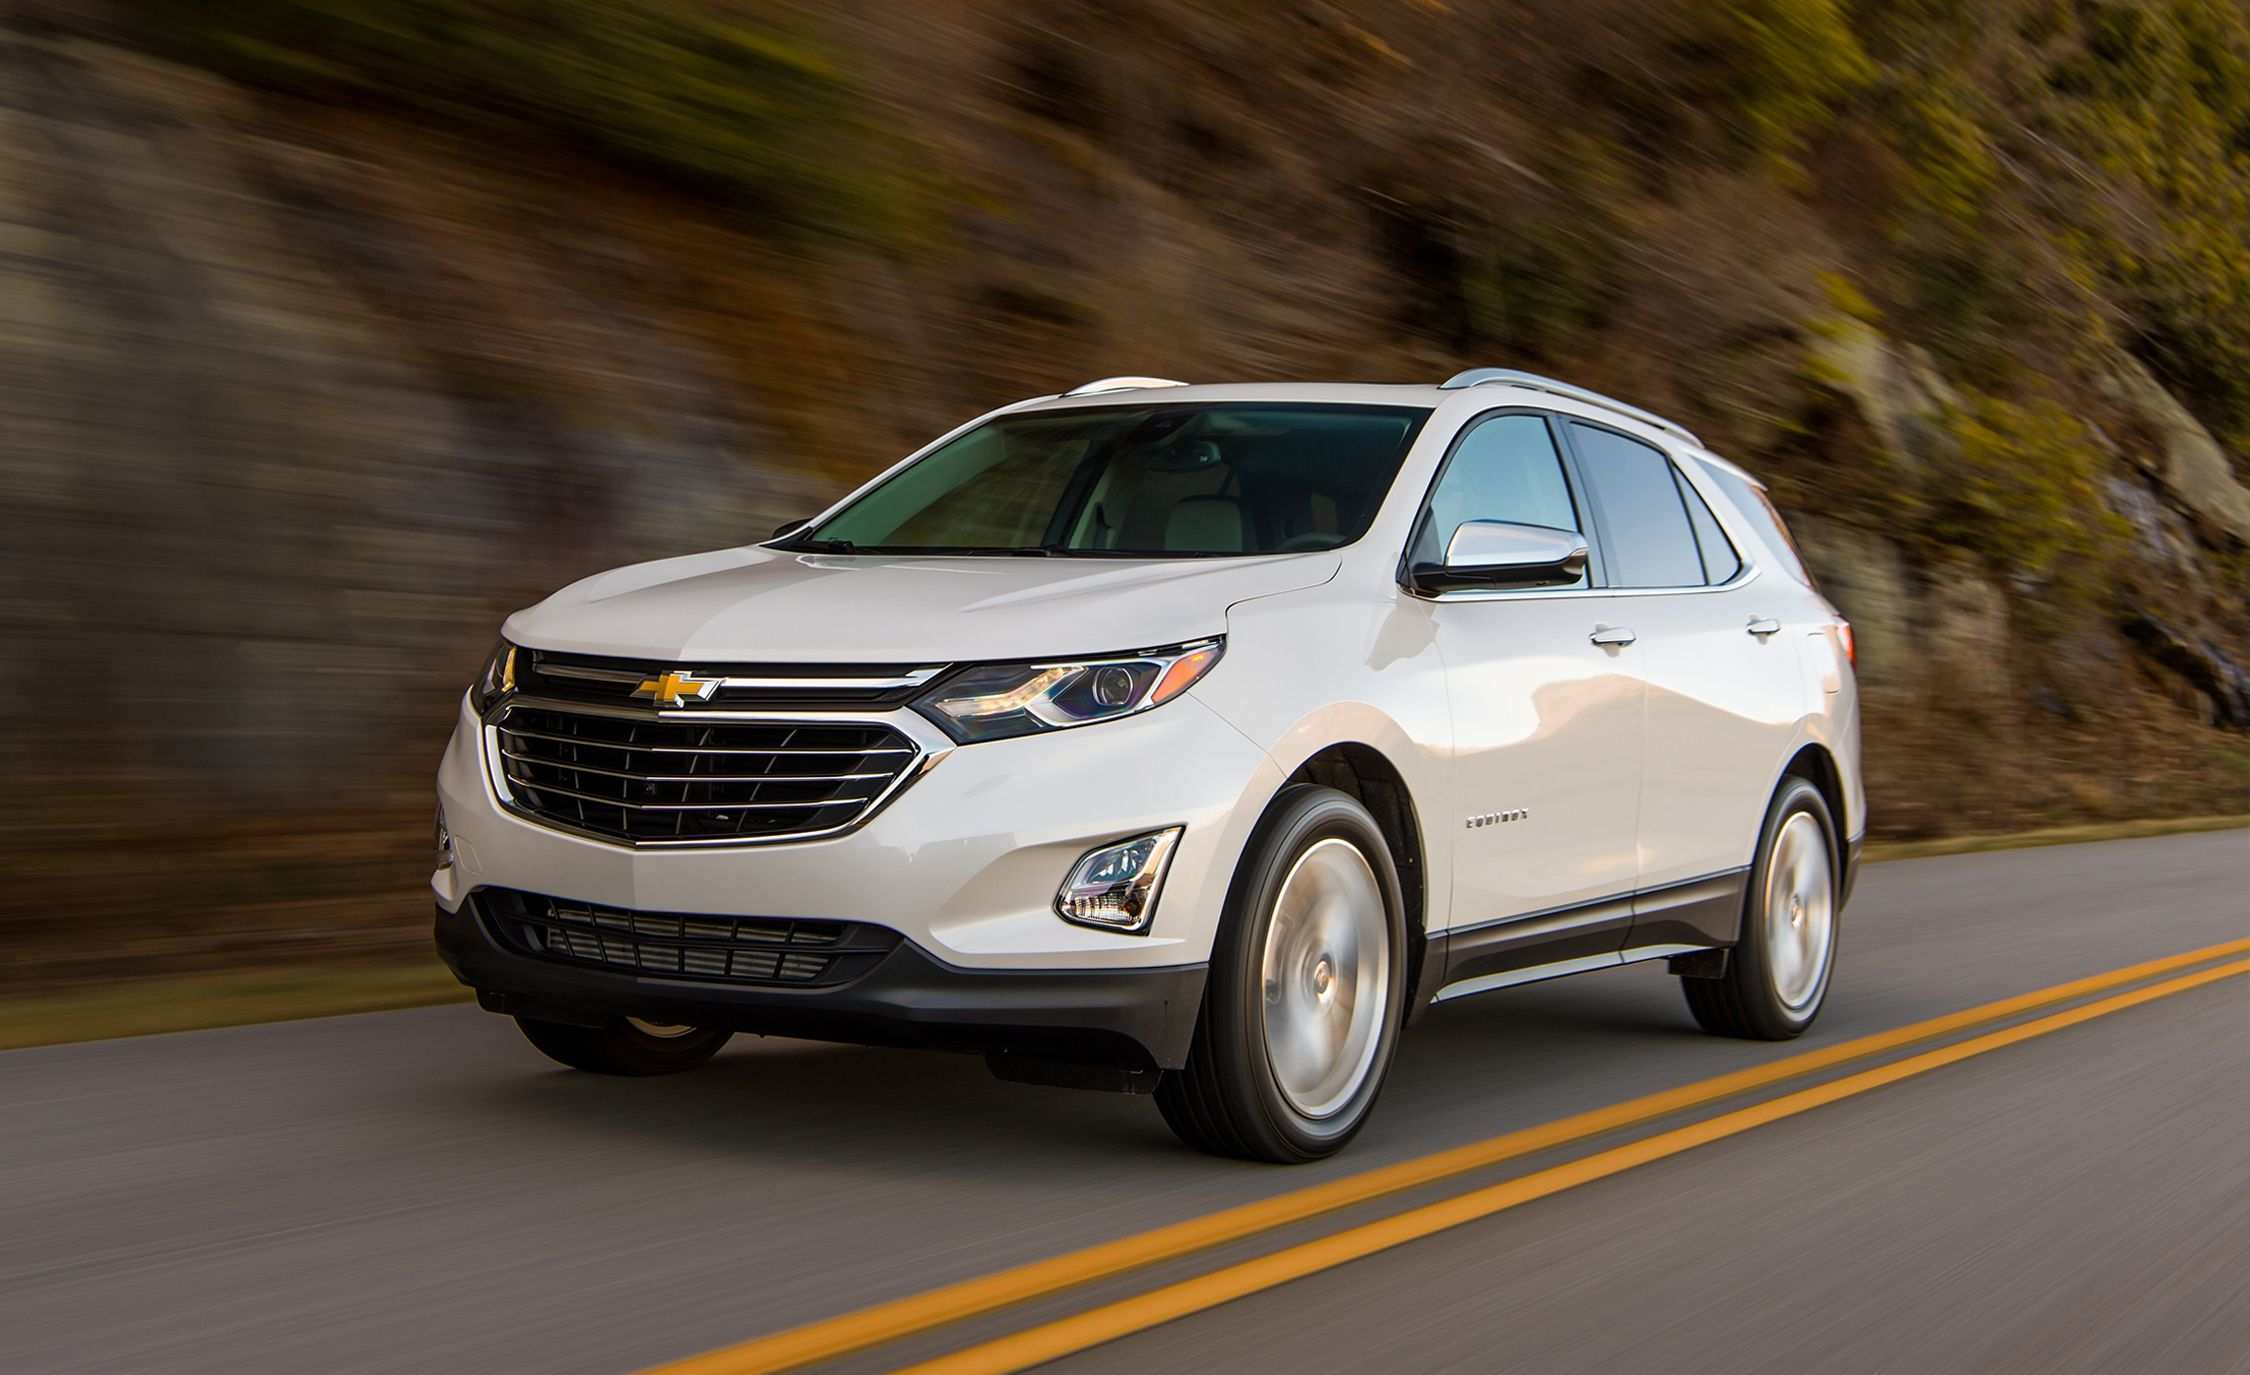 98 New Best Chevrolet Equinox 2019 Lt New Review Configurations with Best Chevrolet Equinox 2019 Lt New Review